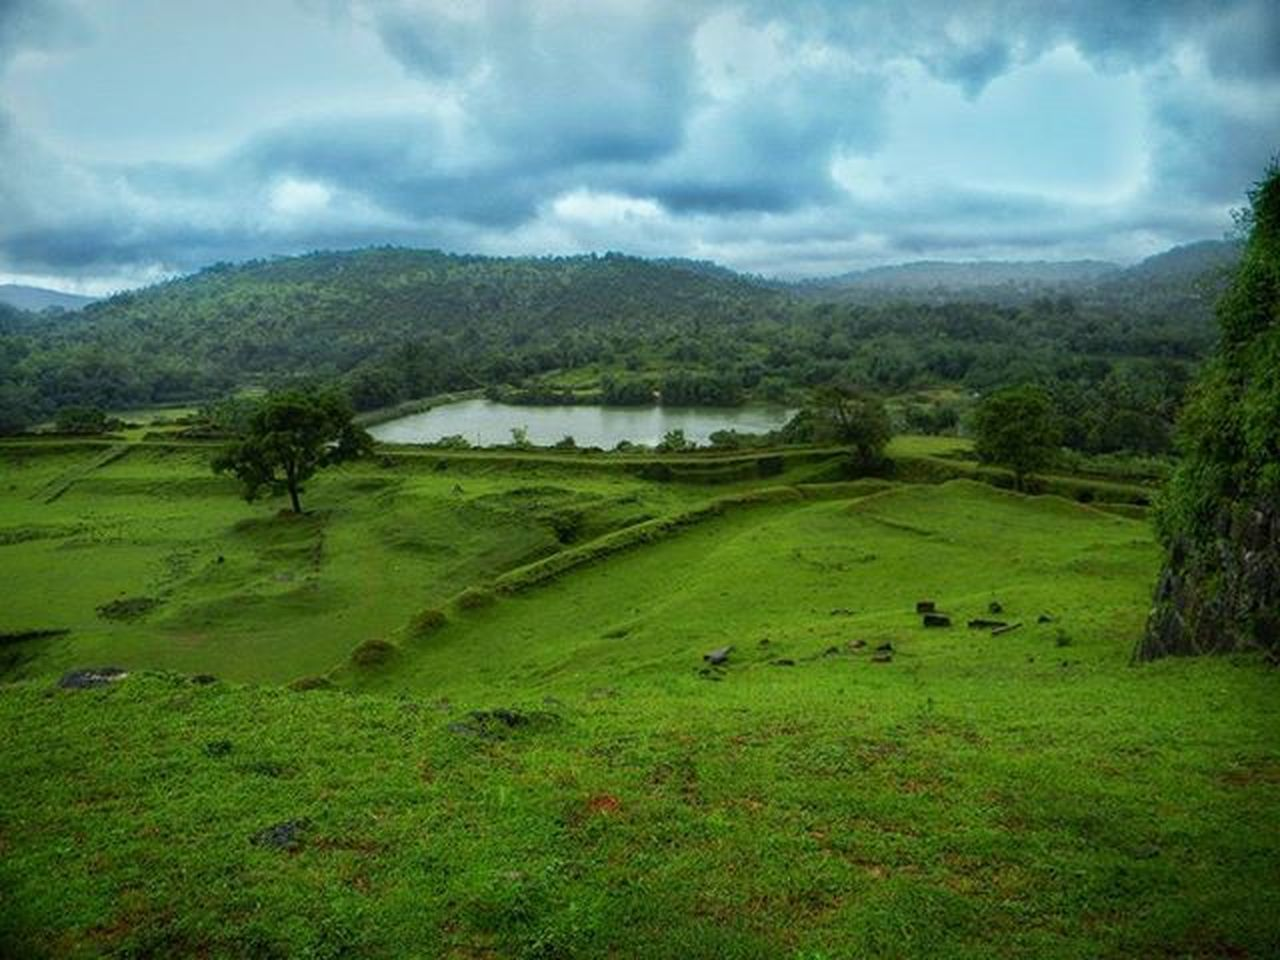 landscape, green color, mountain, nature, field, grass, outdoors, tree, forest, agriculture, no people, scenics, rural scene, cloud - sky, beauty in nature, day, sky